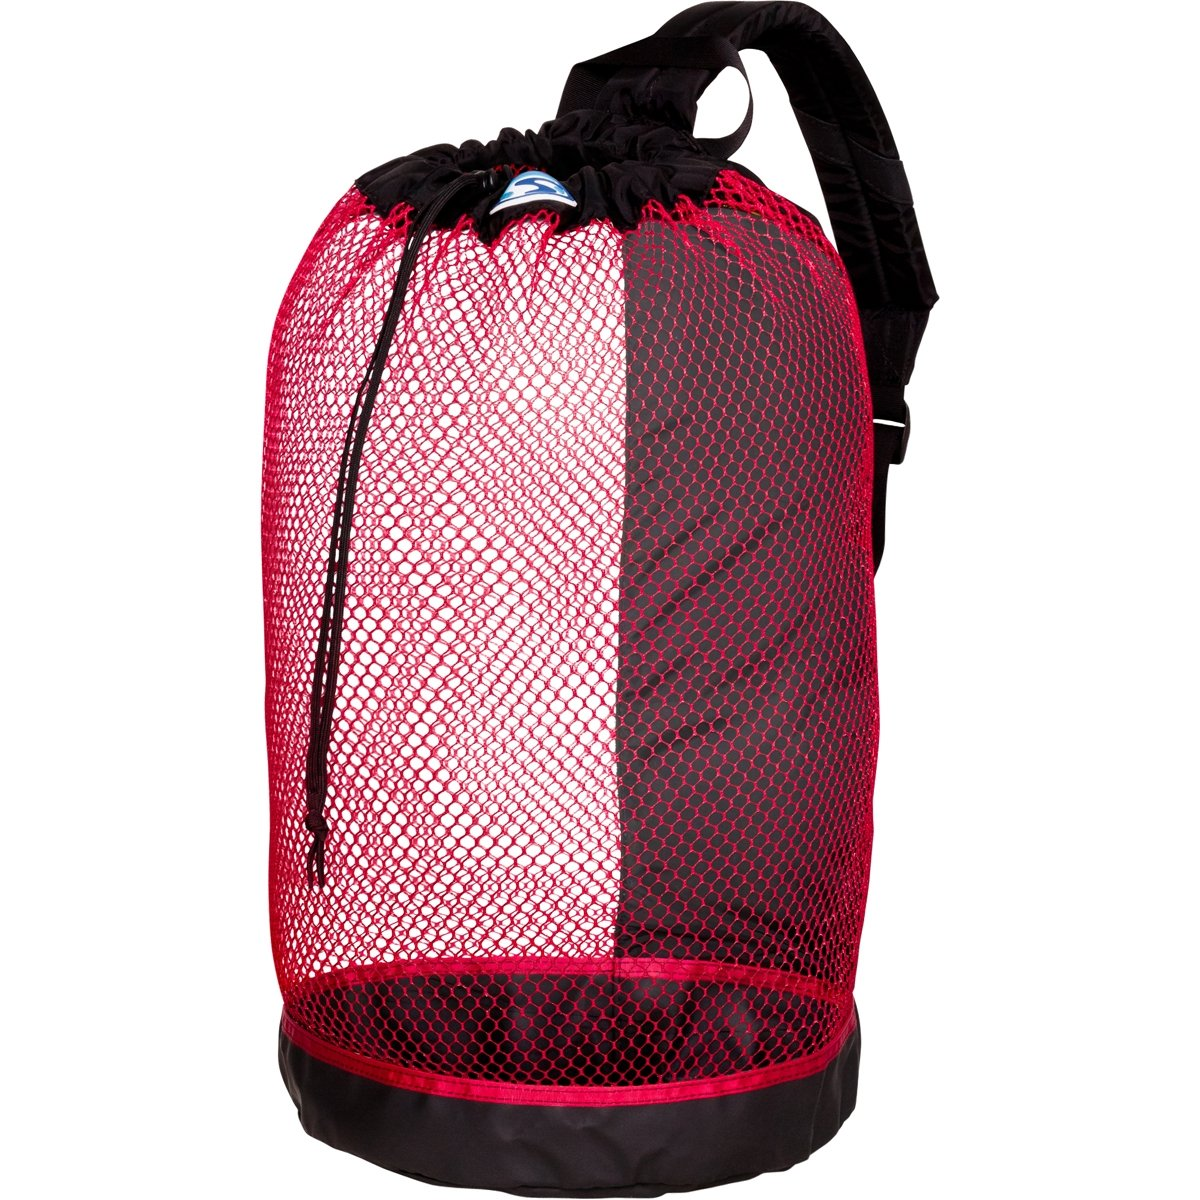 Stahlsac B.V.I. Mesh Backpack (Black/Red)